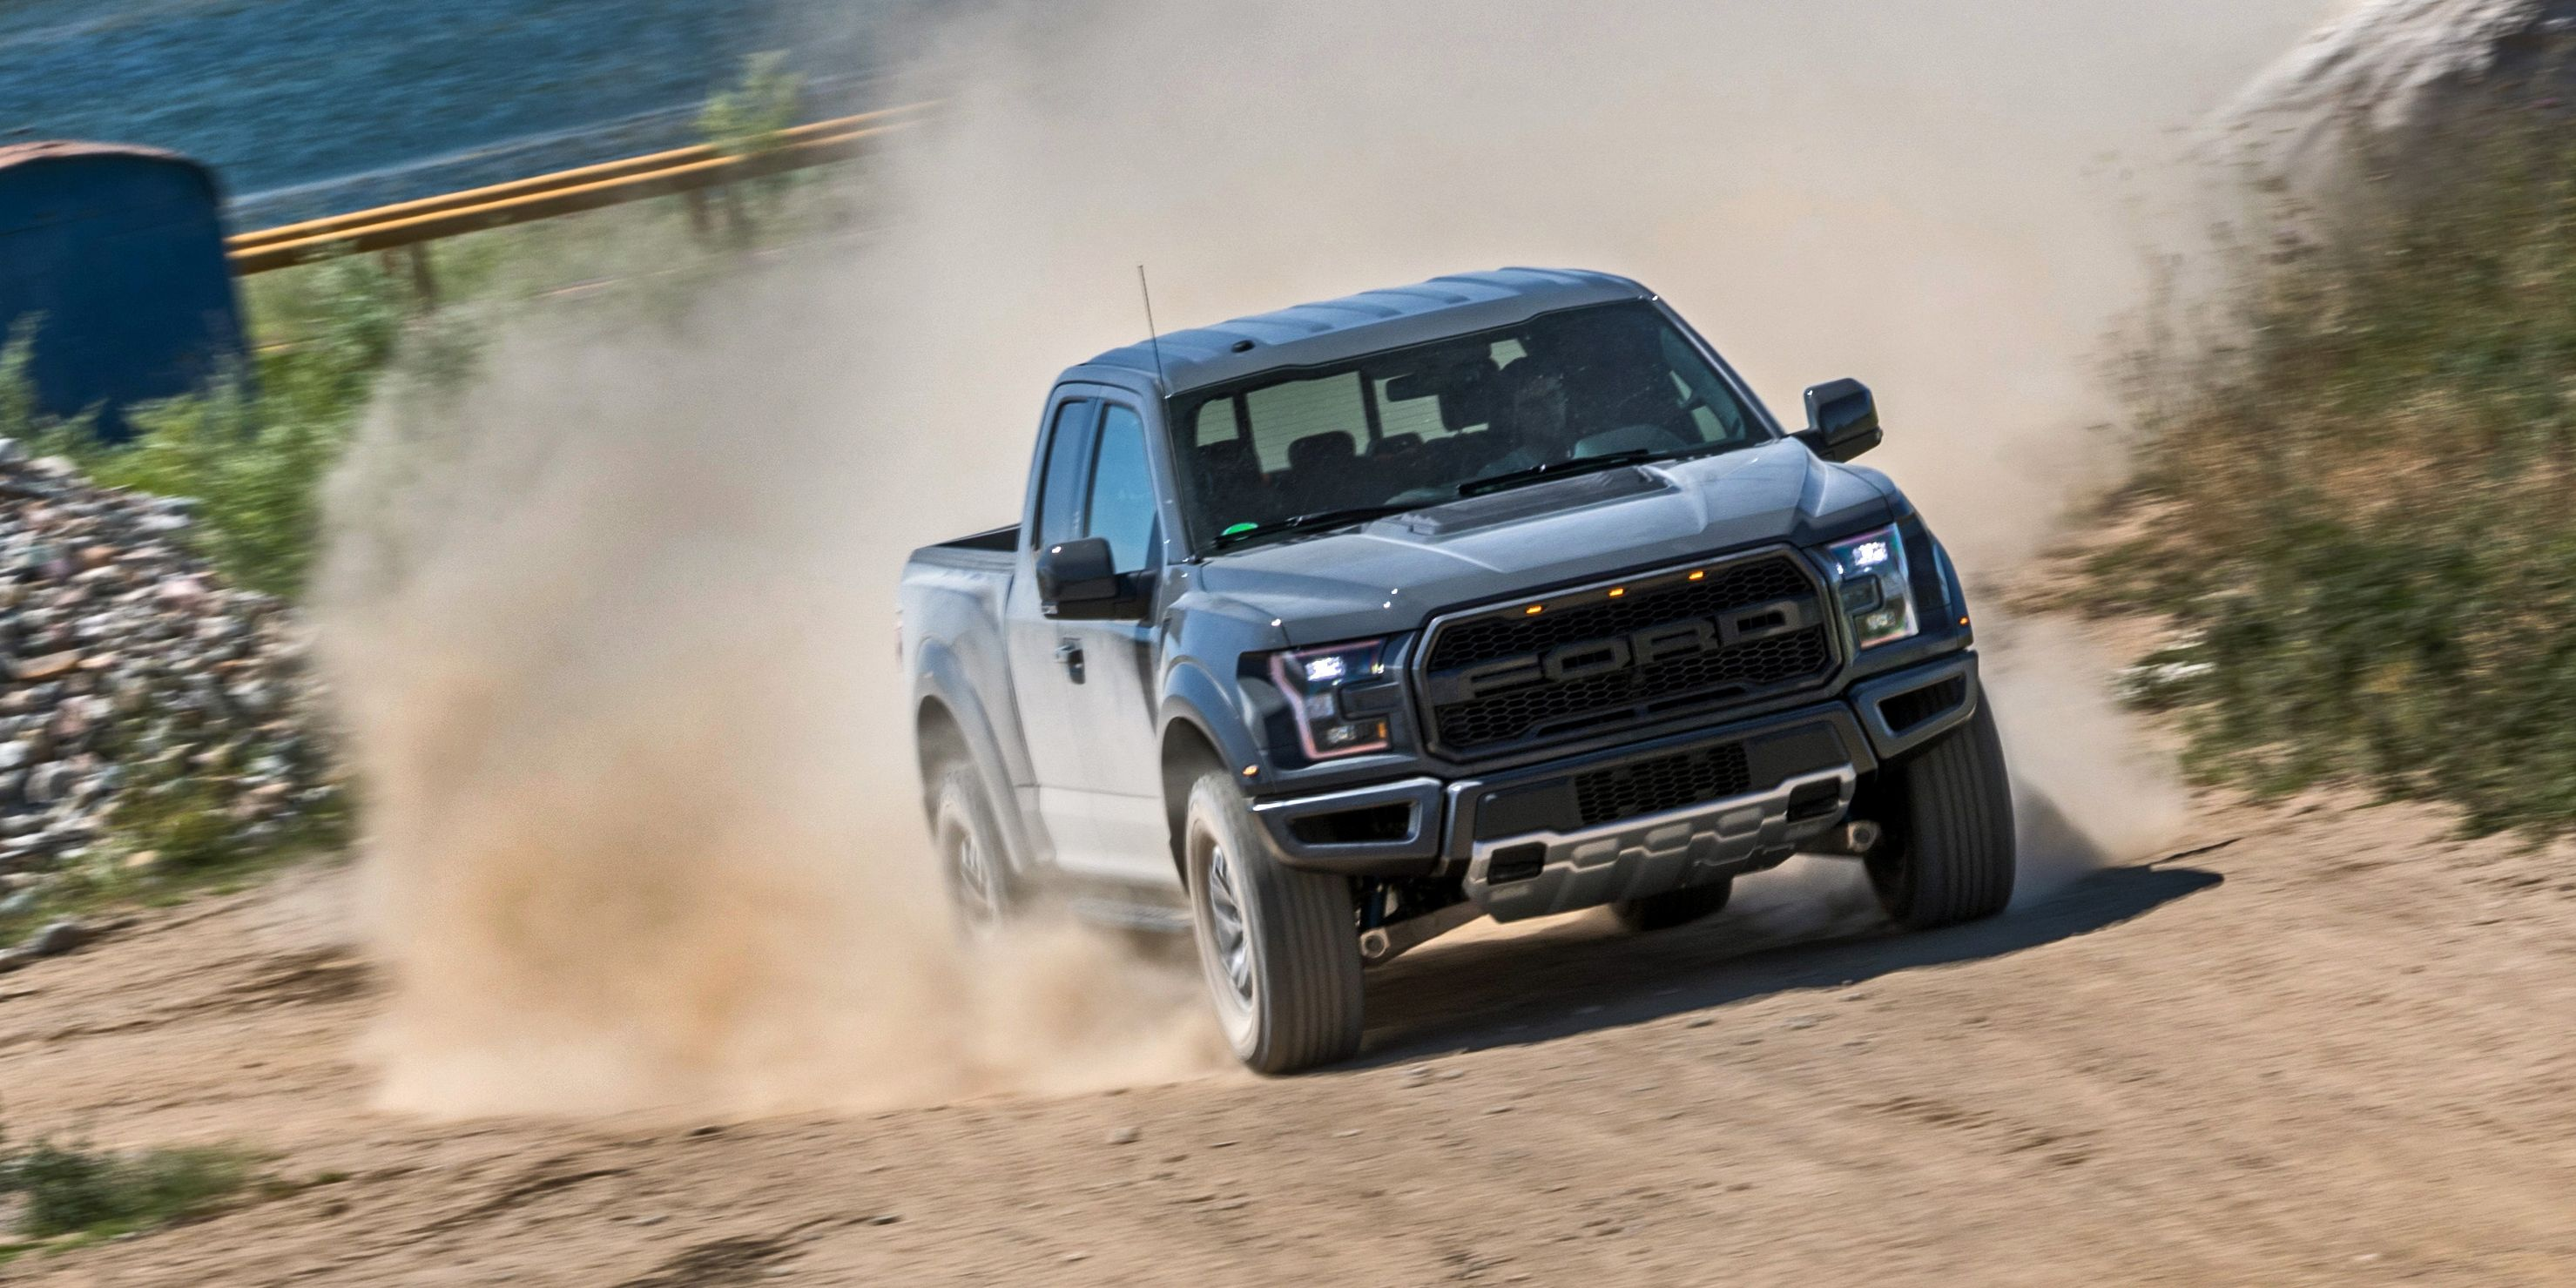 Rumor: The Ford F-150 Raptor Is Getting the Mustang GT500's Supercharged V-8